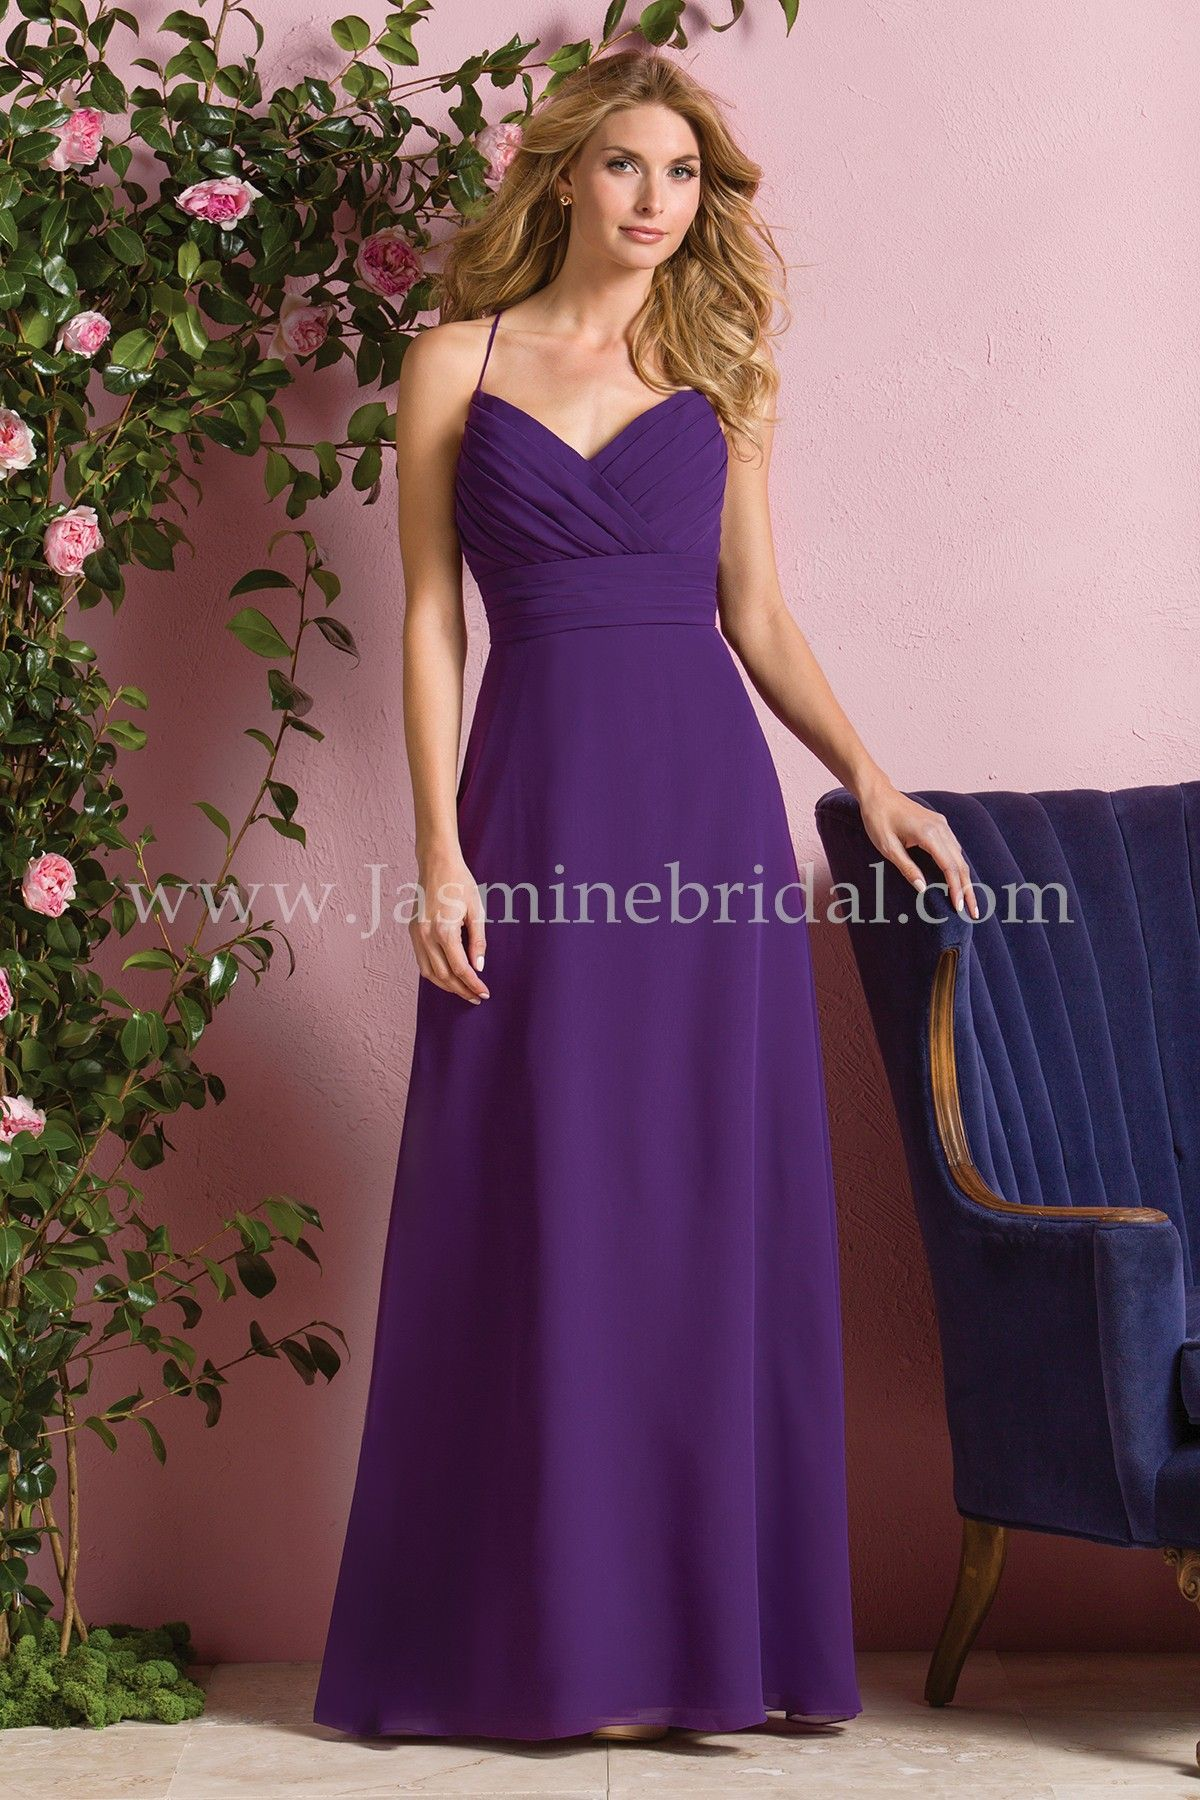 Excepcional Bridesmaid Dresses Bournemouth Ideas Ornamento ...